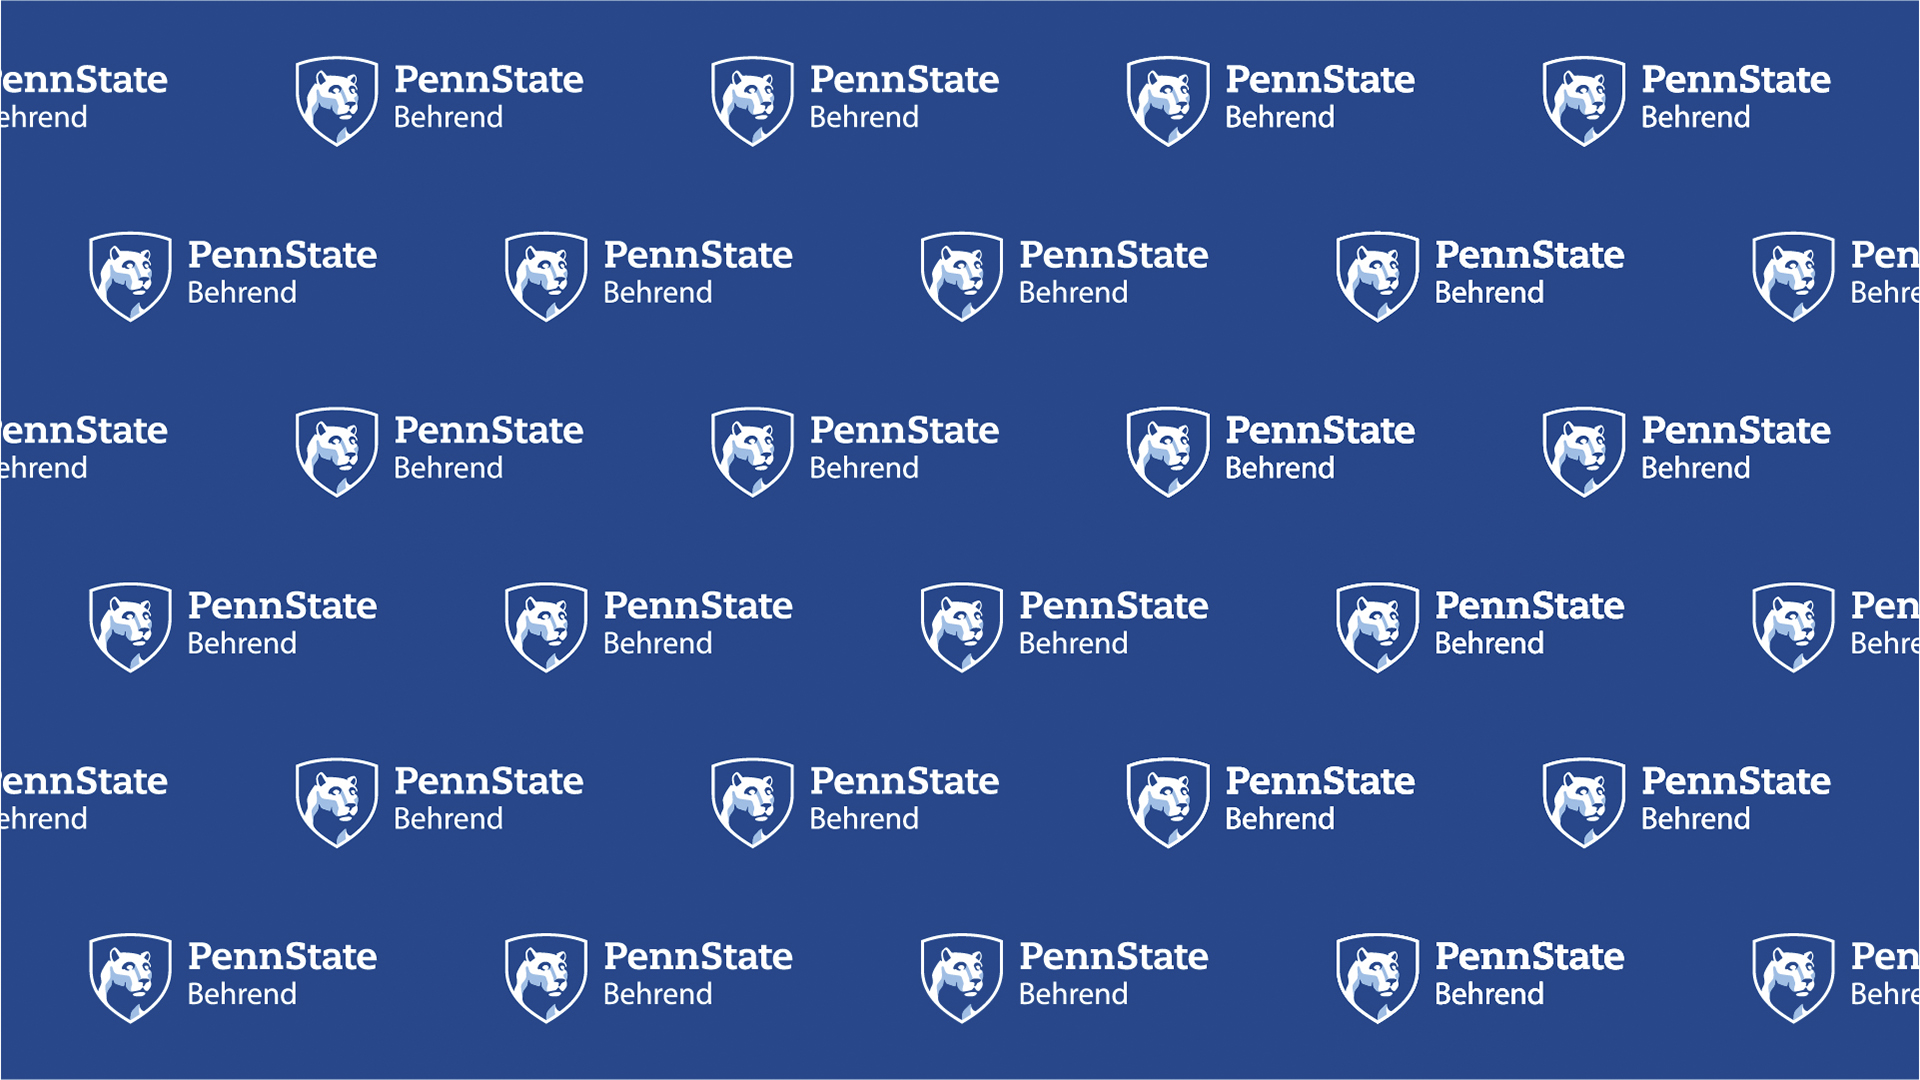 Repeating Penn State Behrend mark